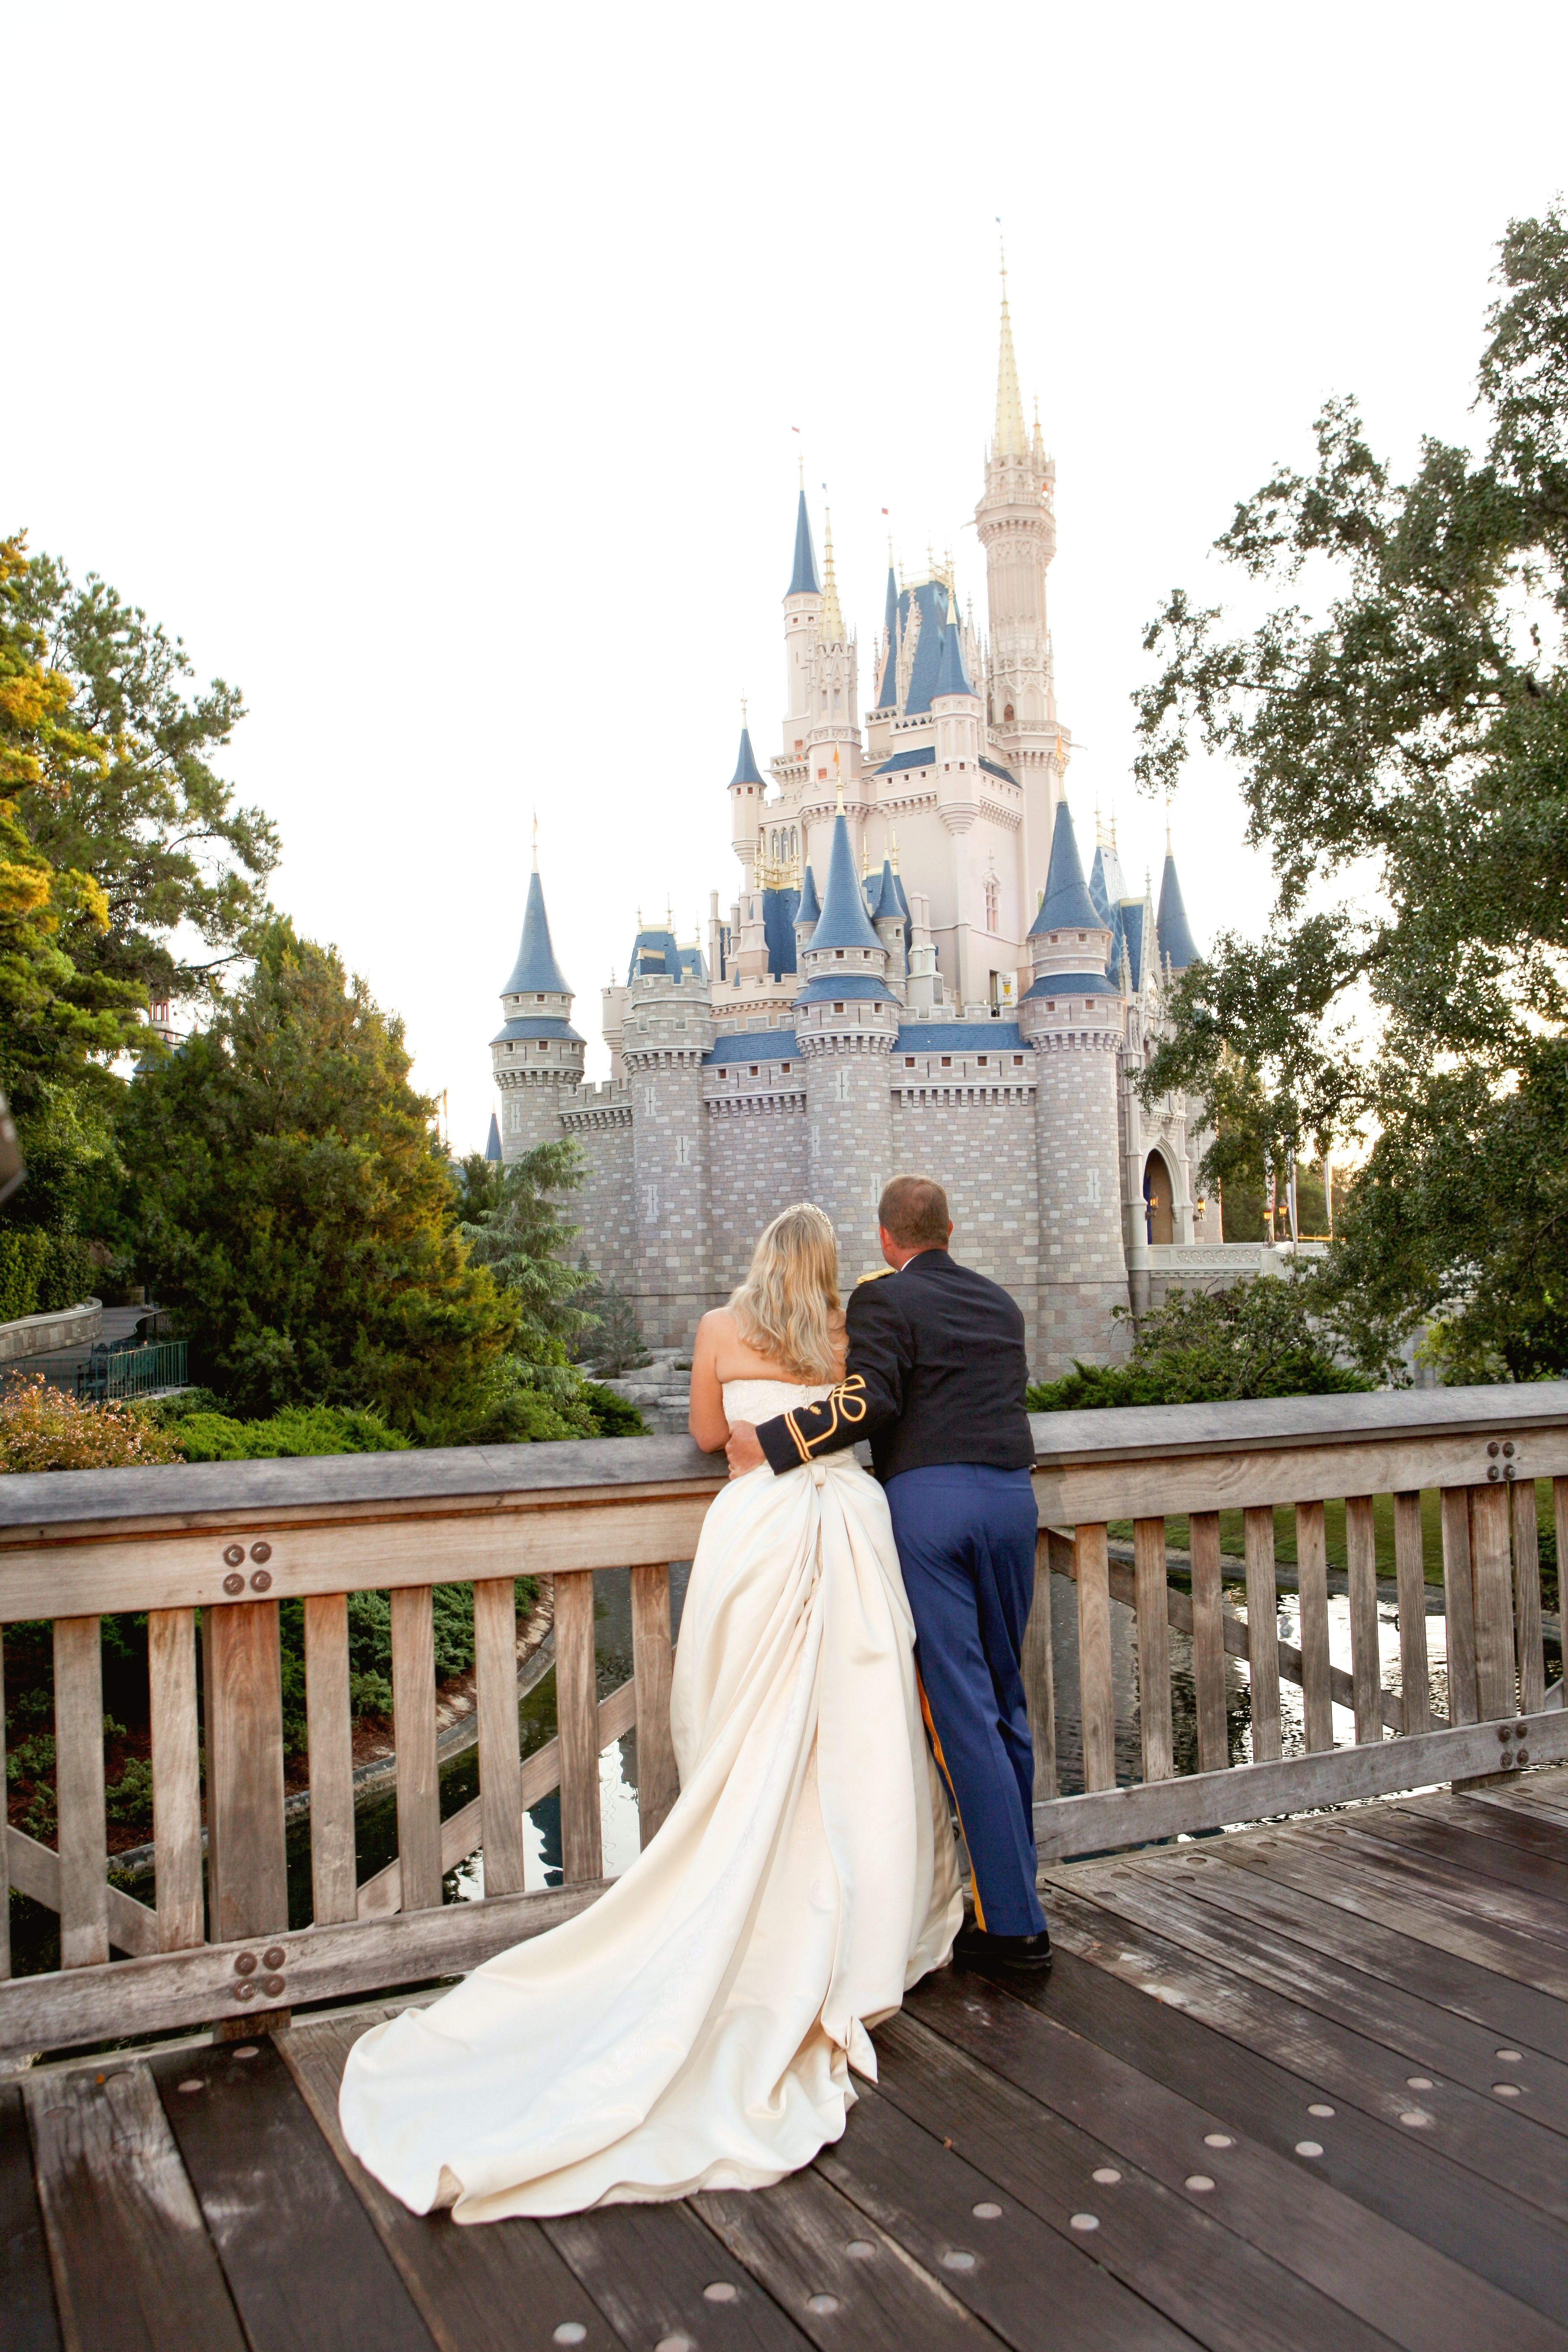 invitations wedding renewal vows ceremony%0A Vow renewal at Disney World  For our    or    year anniversary  Thats where